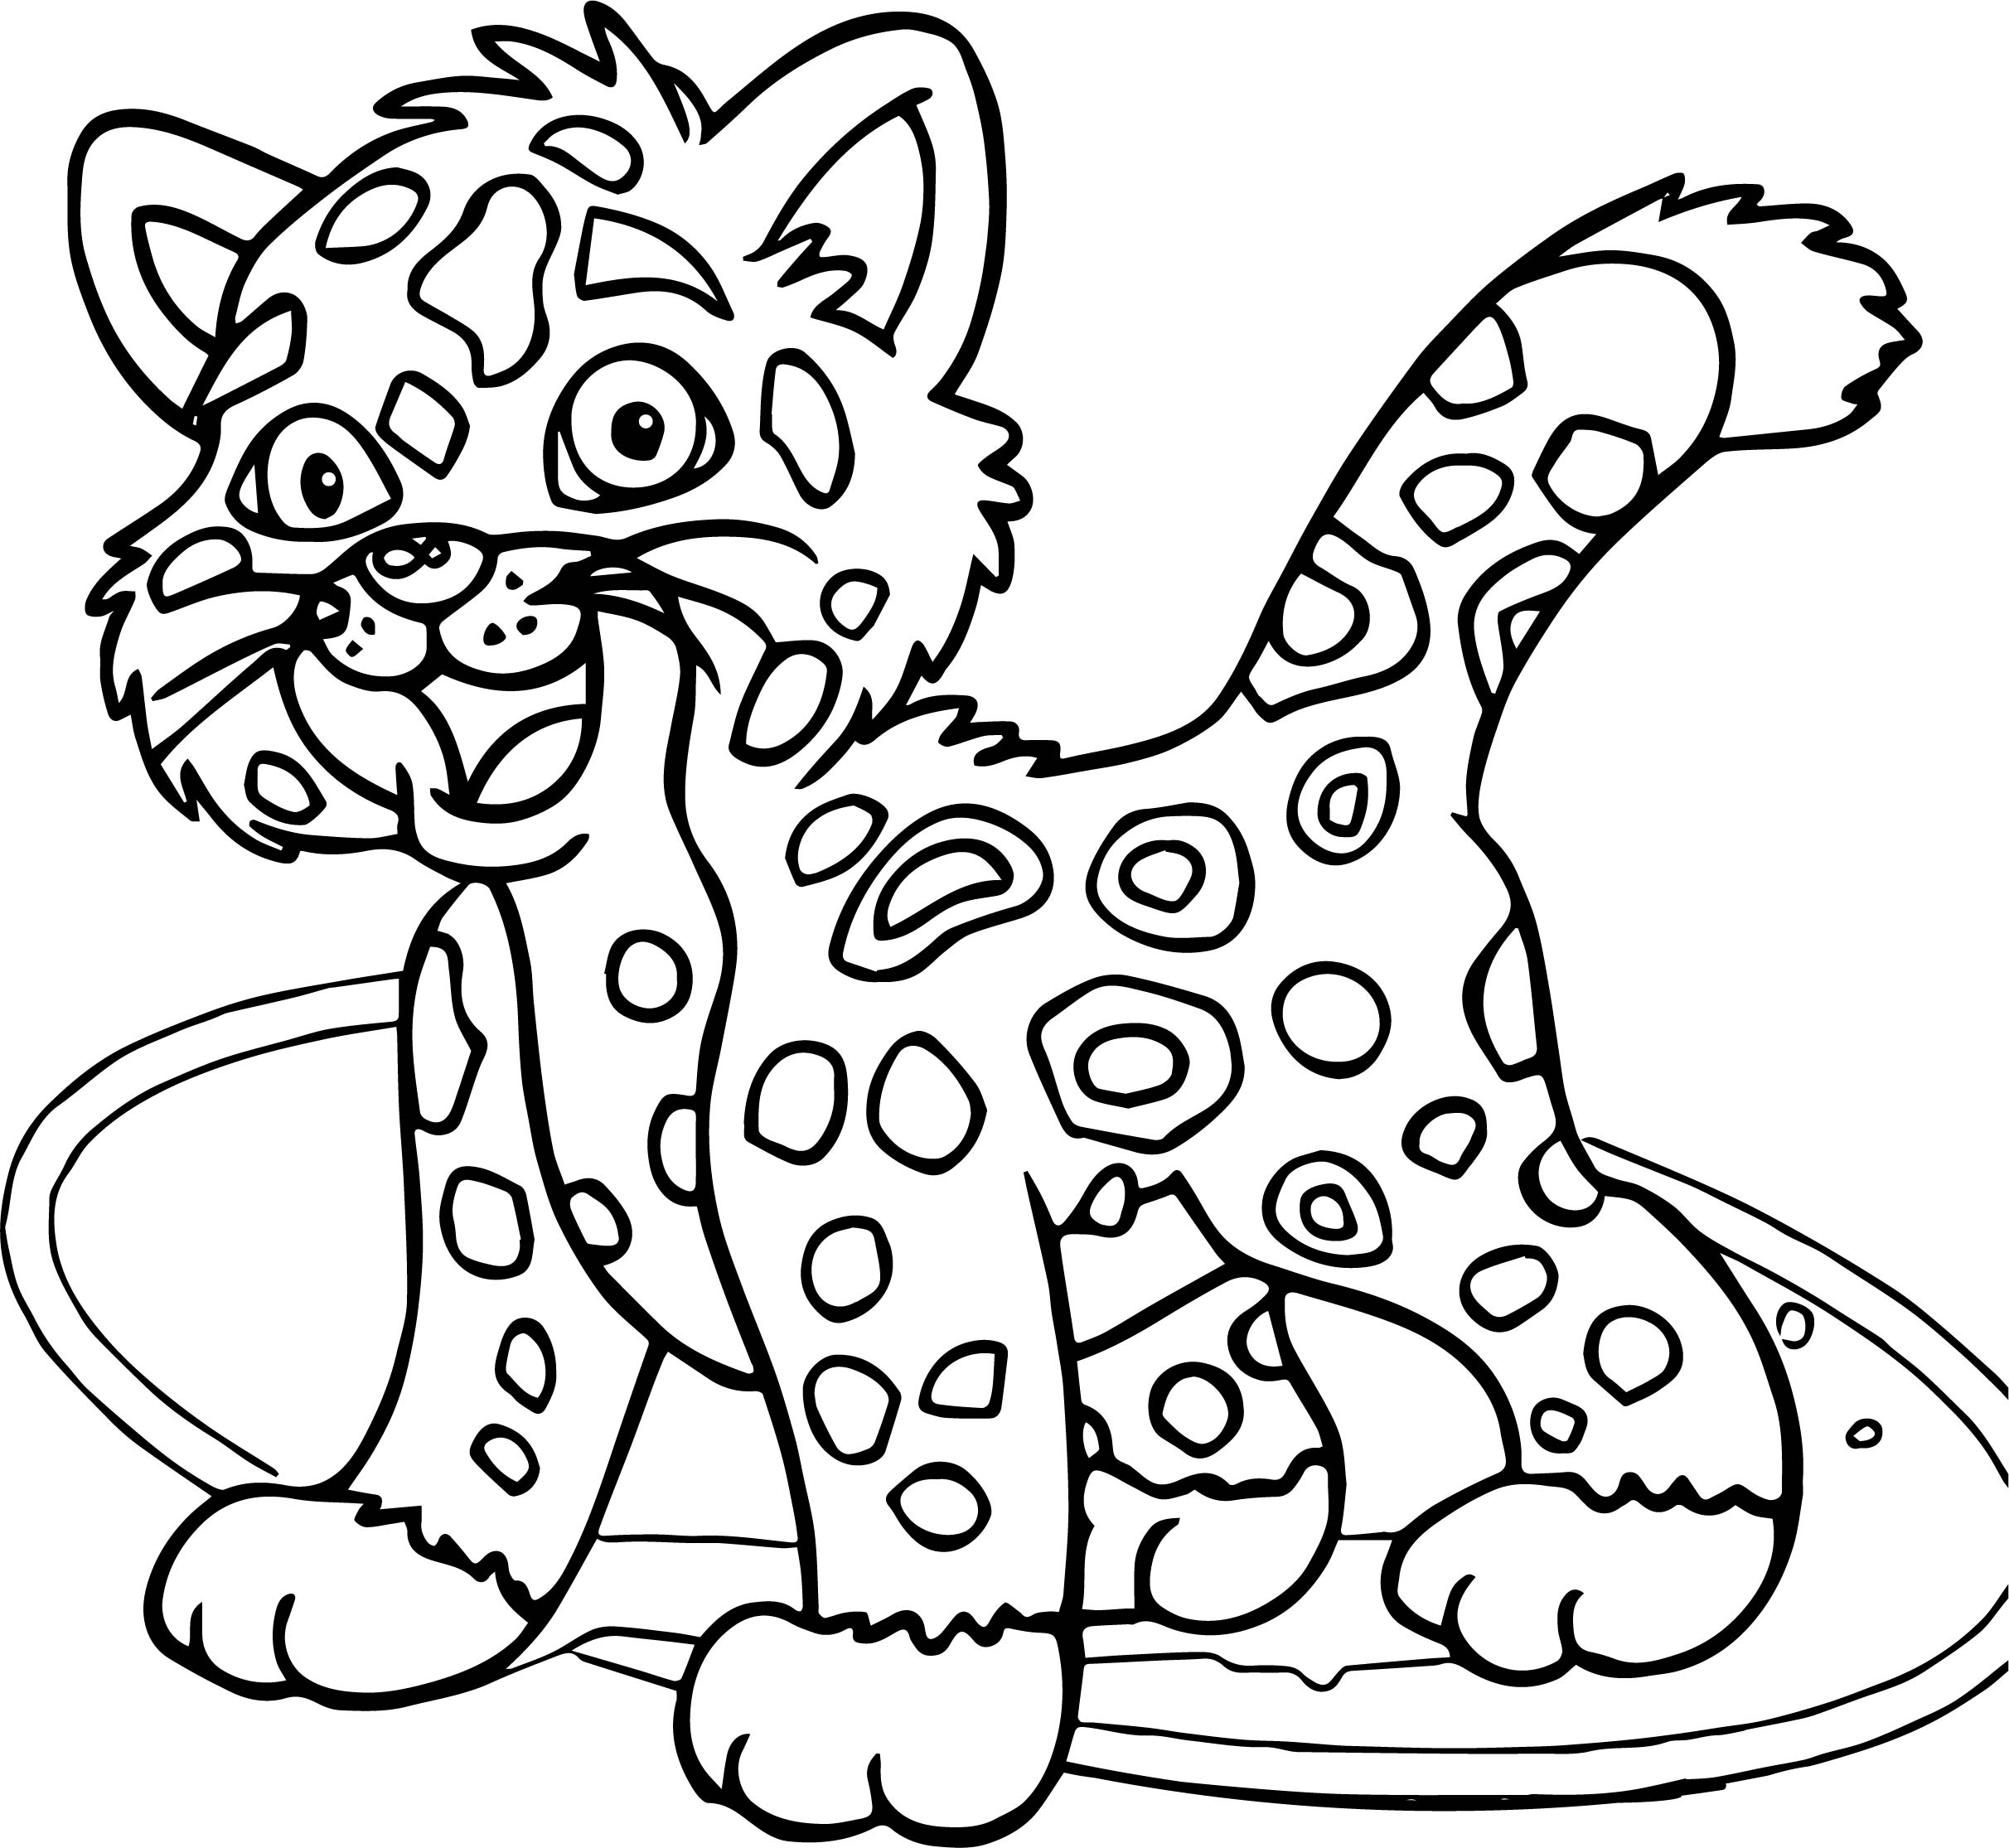 Go Diego Go Just Lion Coloring Page